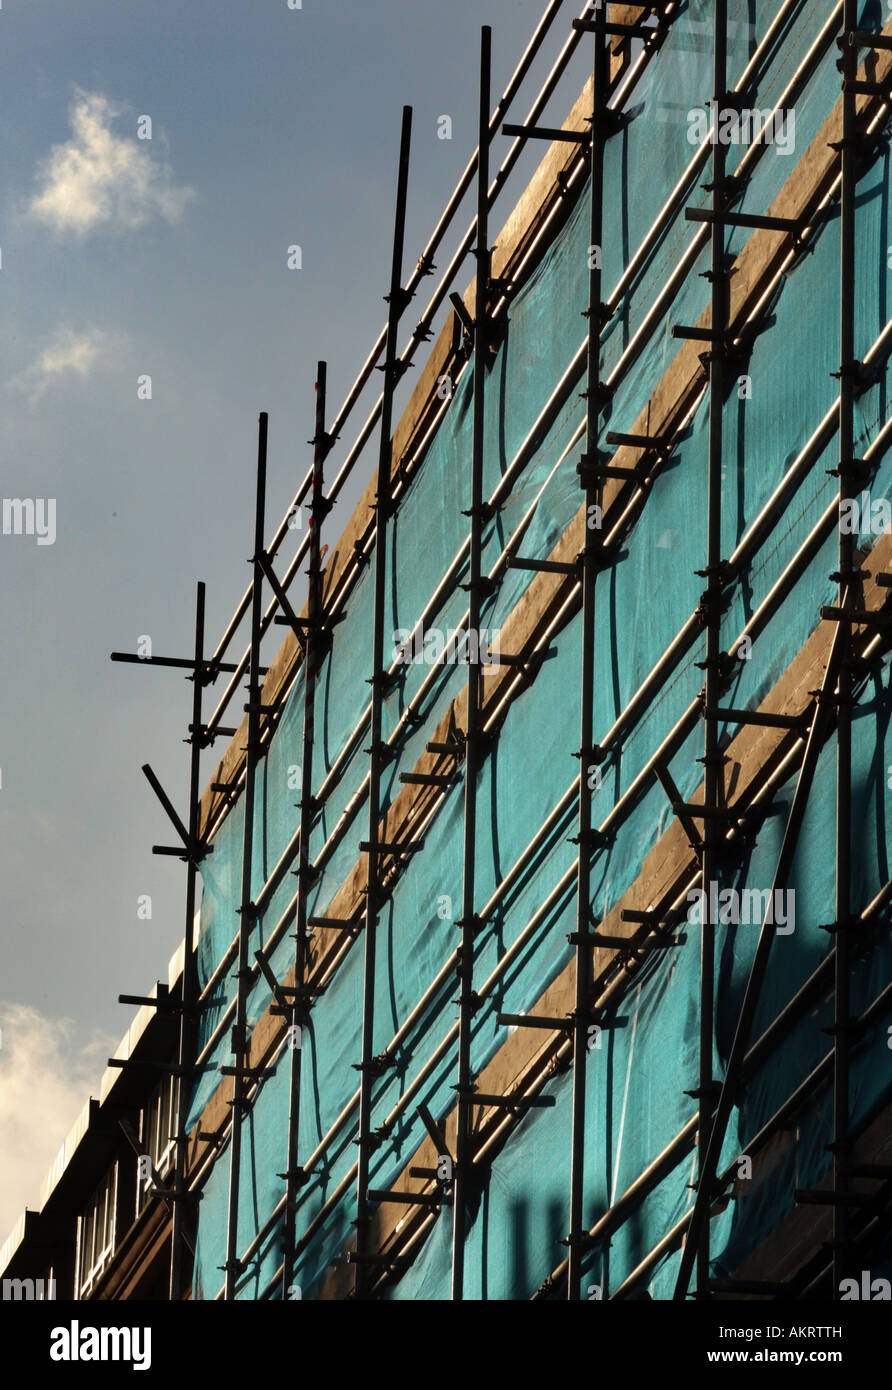 A GV of scaffolding surrounding a building on a clear day in central London - Stock Image